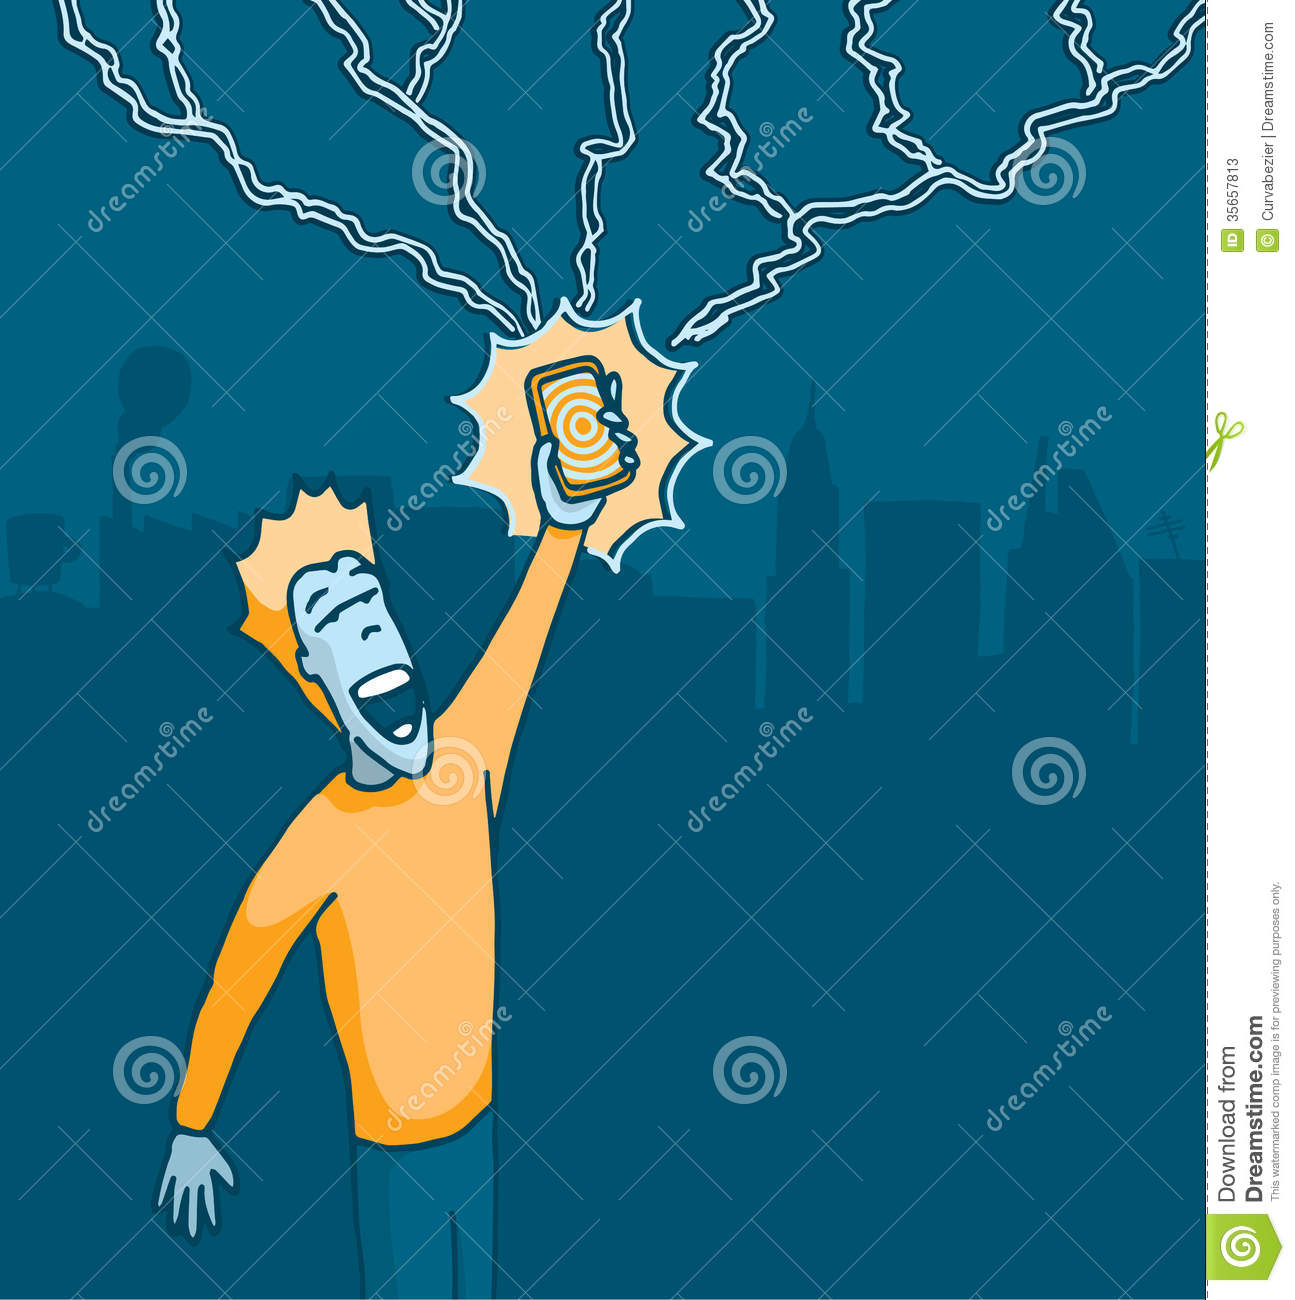 Angry Old Woman Images Stock Photos amp Vectors  Shutterstock